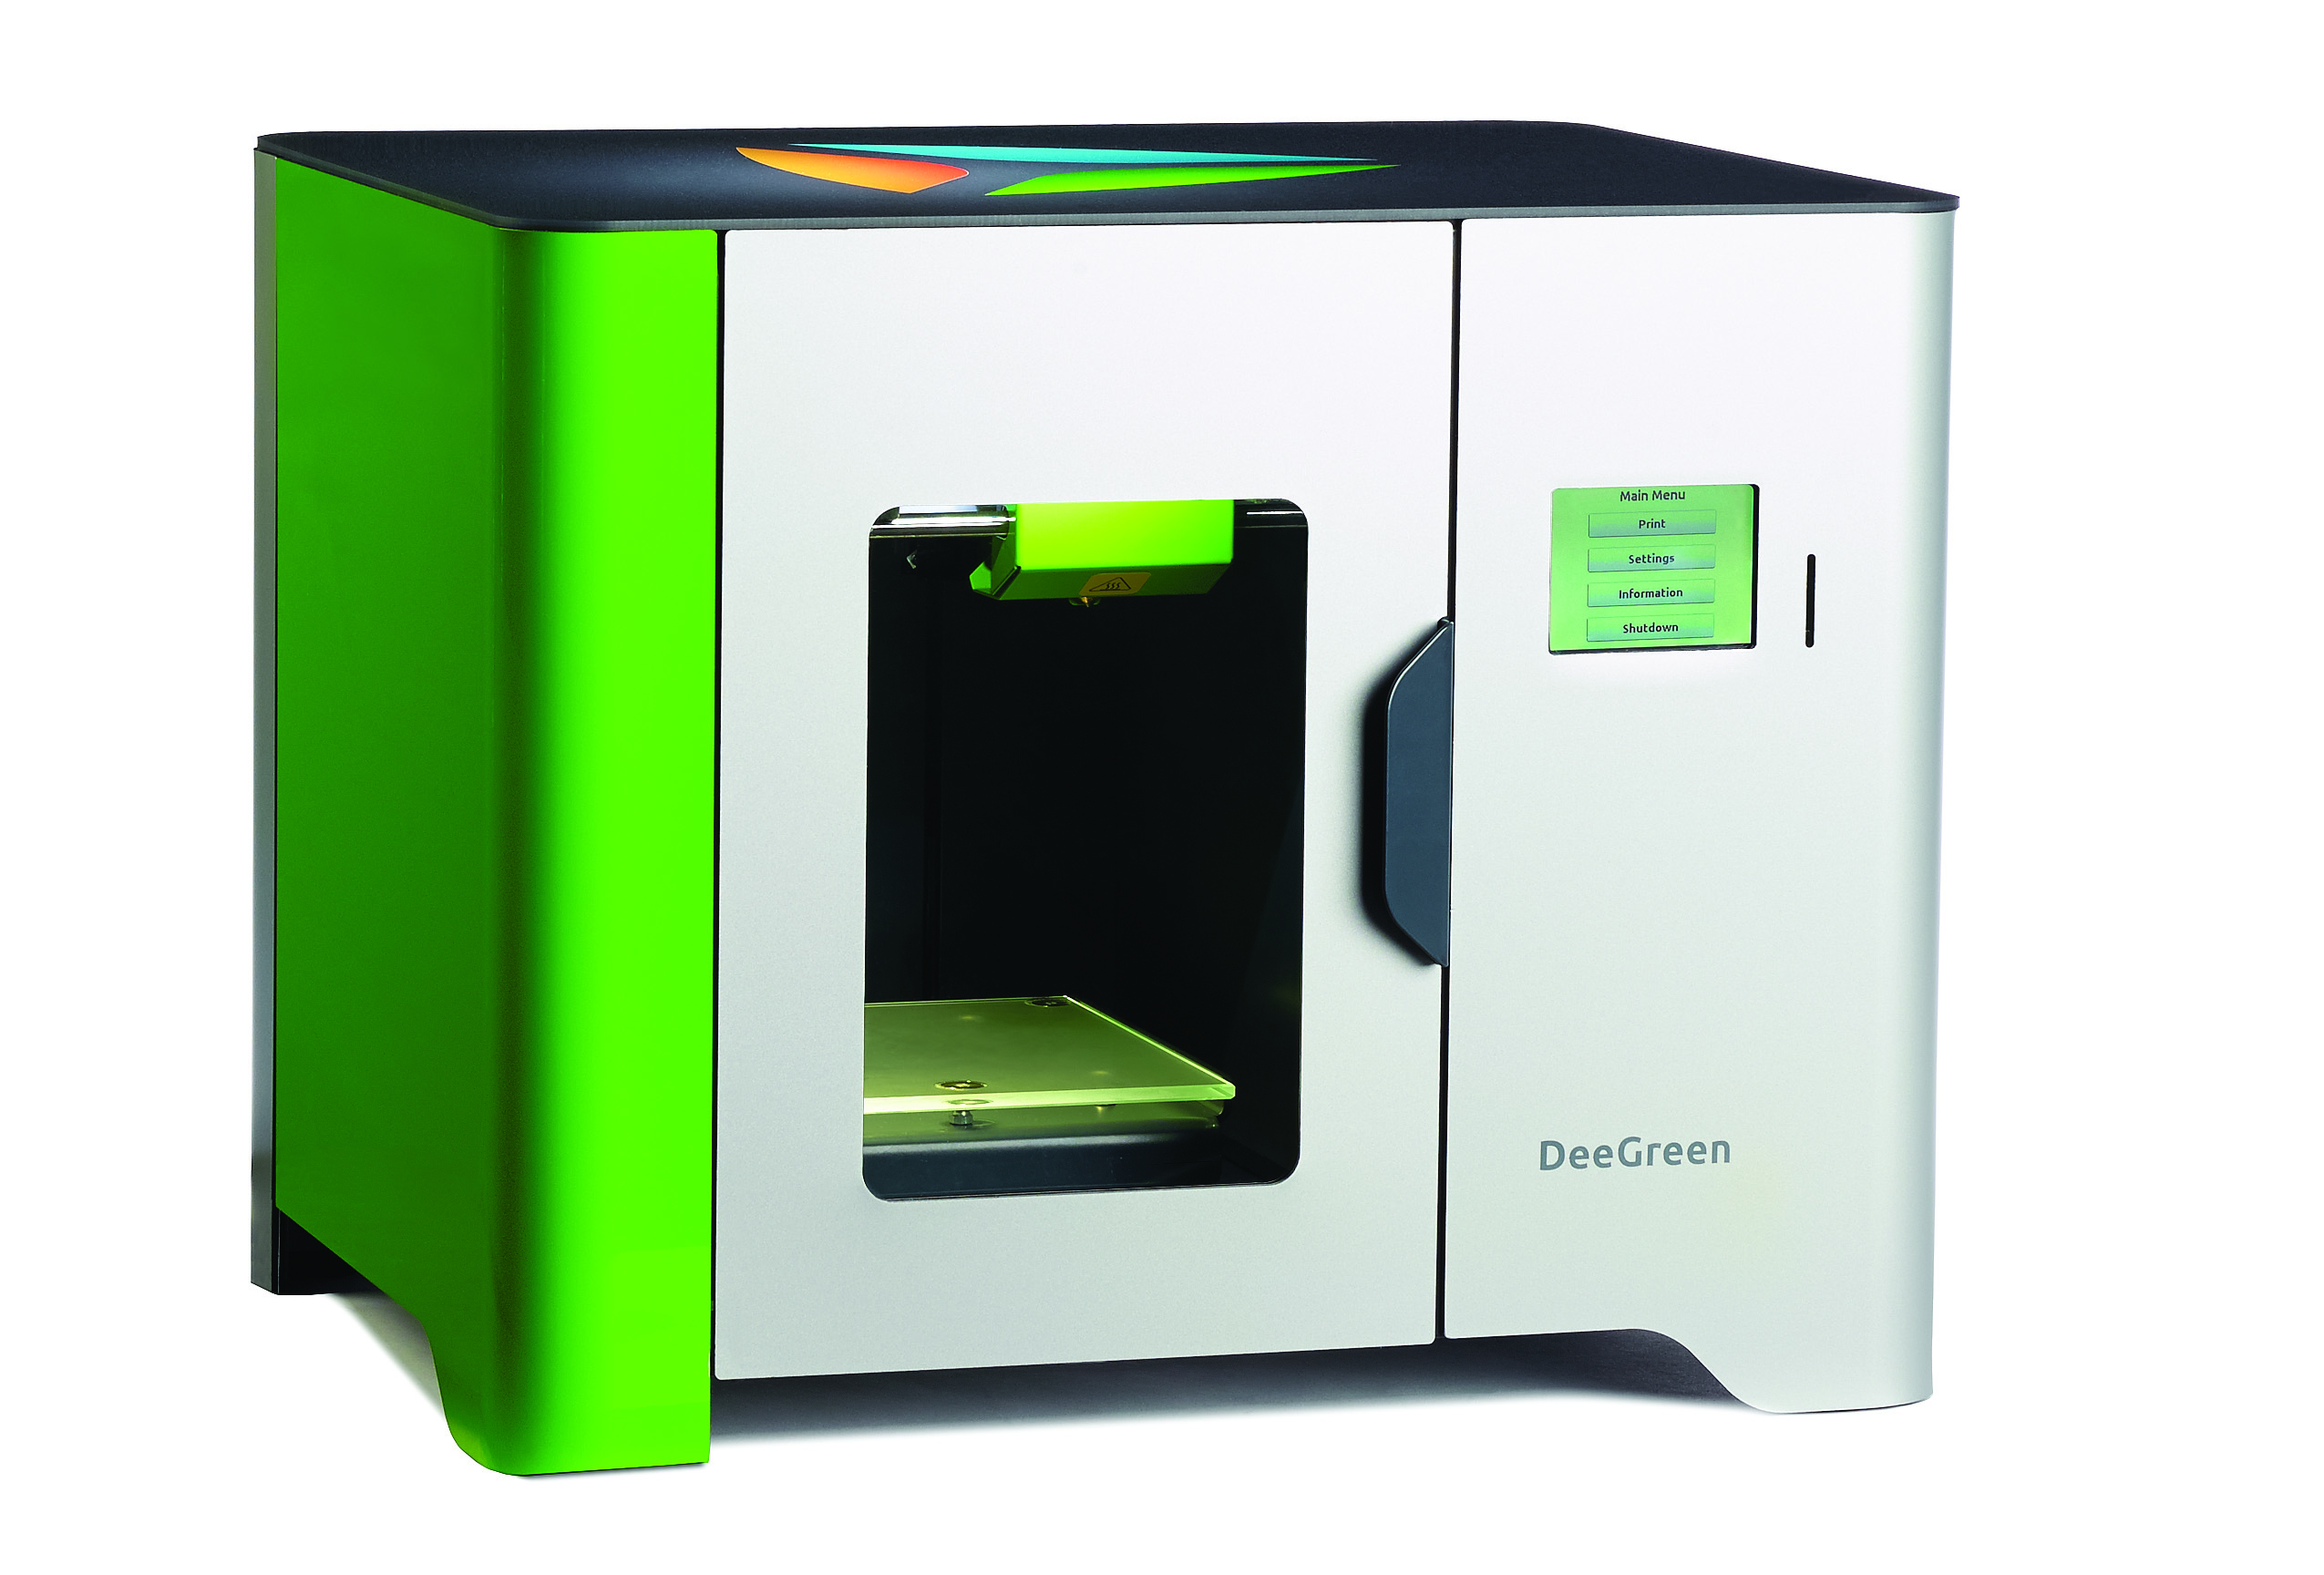 Review: DeeGreen 3D Printer